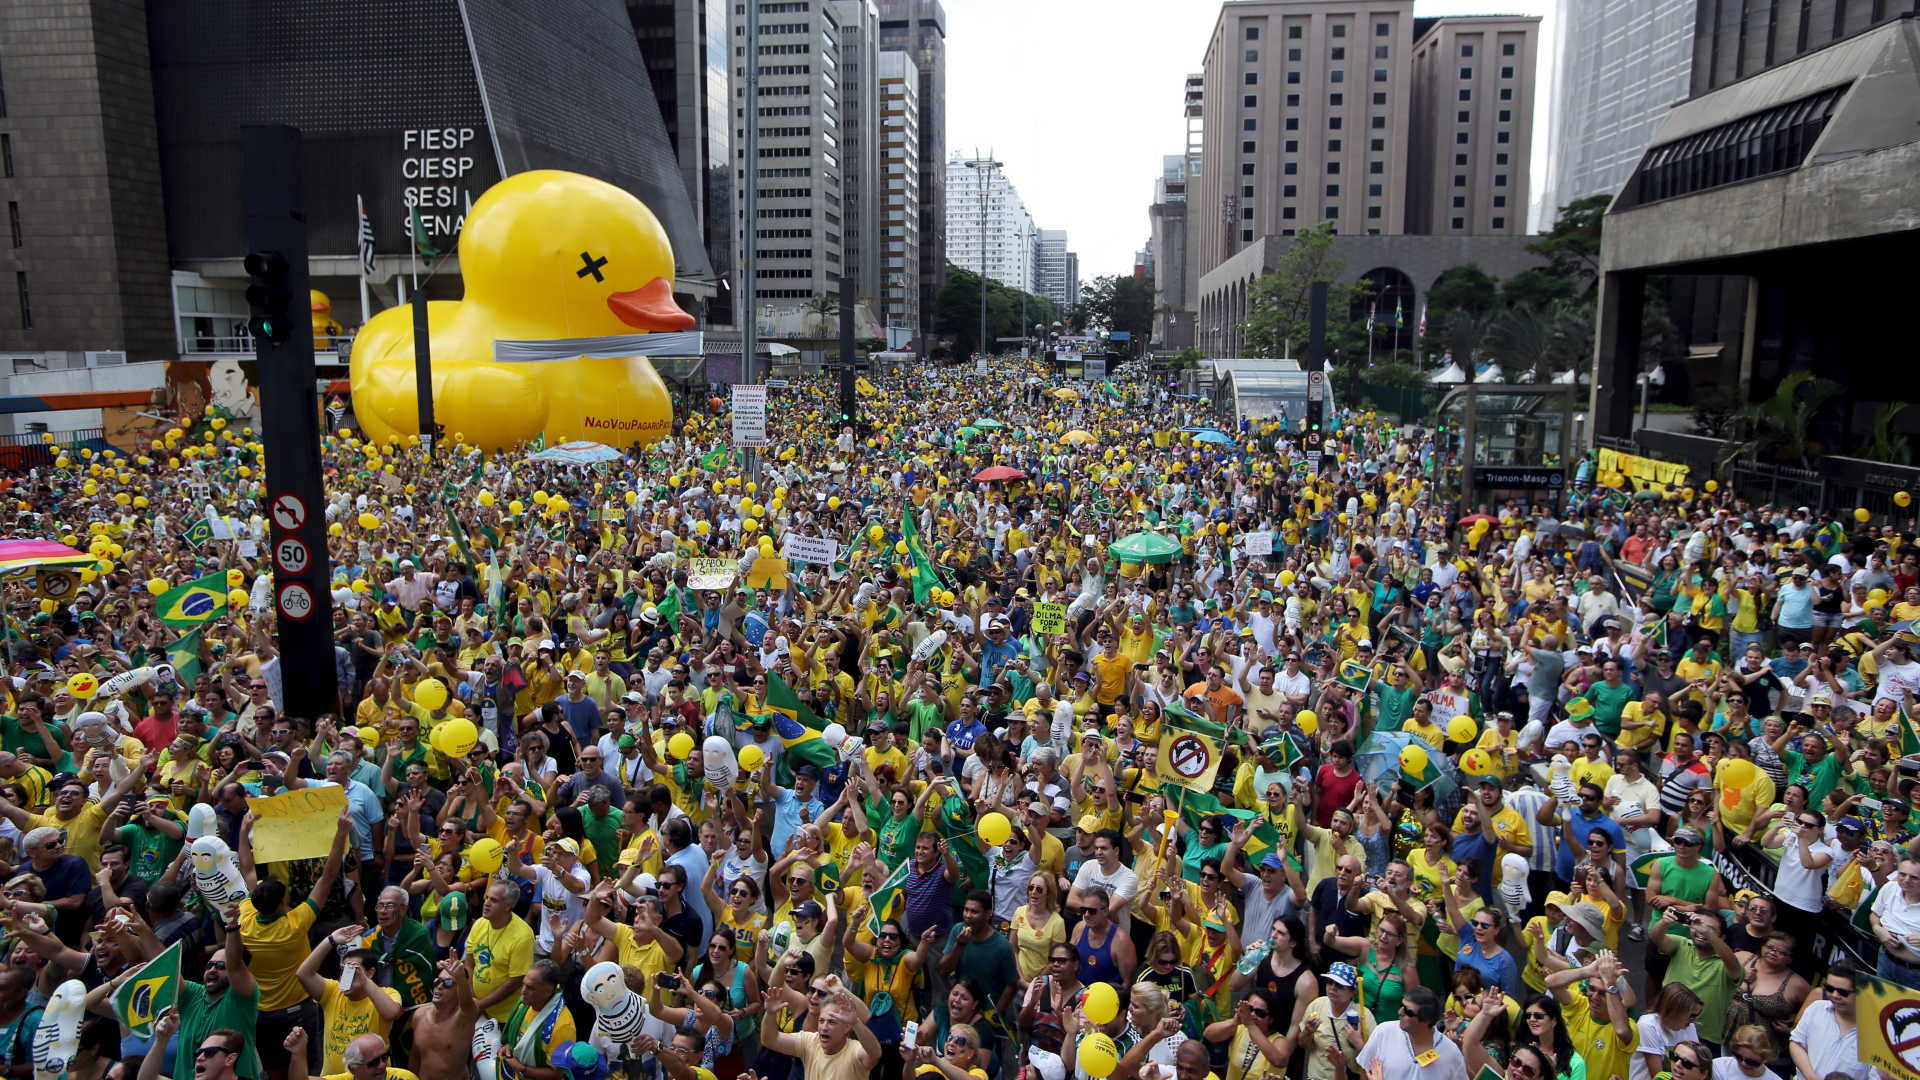 Demonstrators attend a protest calling for the impeachment of Brazil's President Dilma Rousseff at Paulista Avenue in Sao Paulo, Brazil, December 13, 2015. REUTERS/Paulo Whitaker - RTX1YIAN